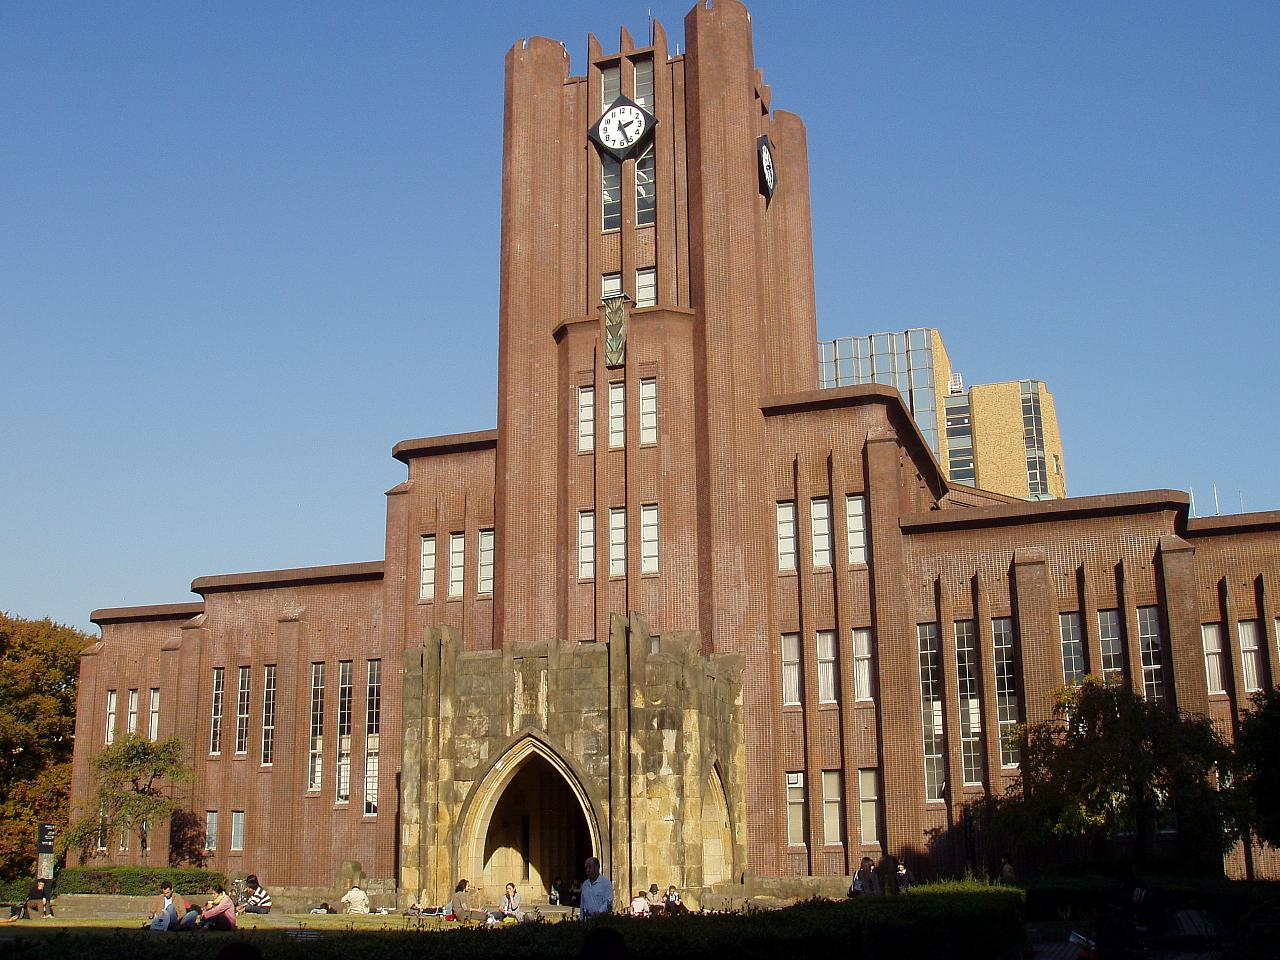 'Yasuda Auditorium, Tokyo University - Nov 2005' by User Daderot on en.wikipedia - Own work. Licensed under CC BY-SA 3.0 via Commons - https://commons.wikimedia.org/wiki/File:Yasuda_Auditorium,_Tokyo_University_-_Nov_2005.JPG#/media/File:Yasuda_Auditorium